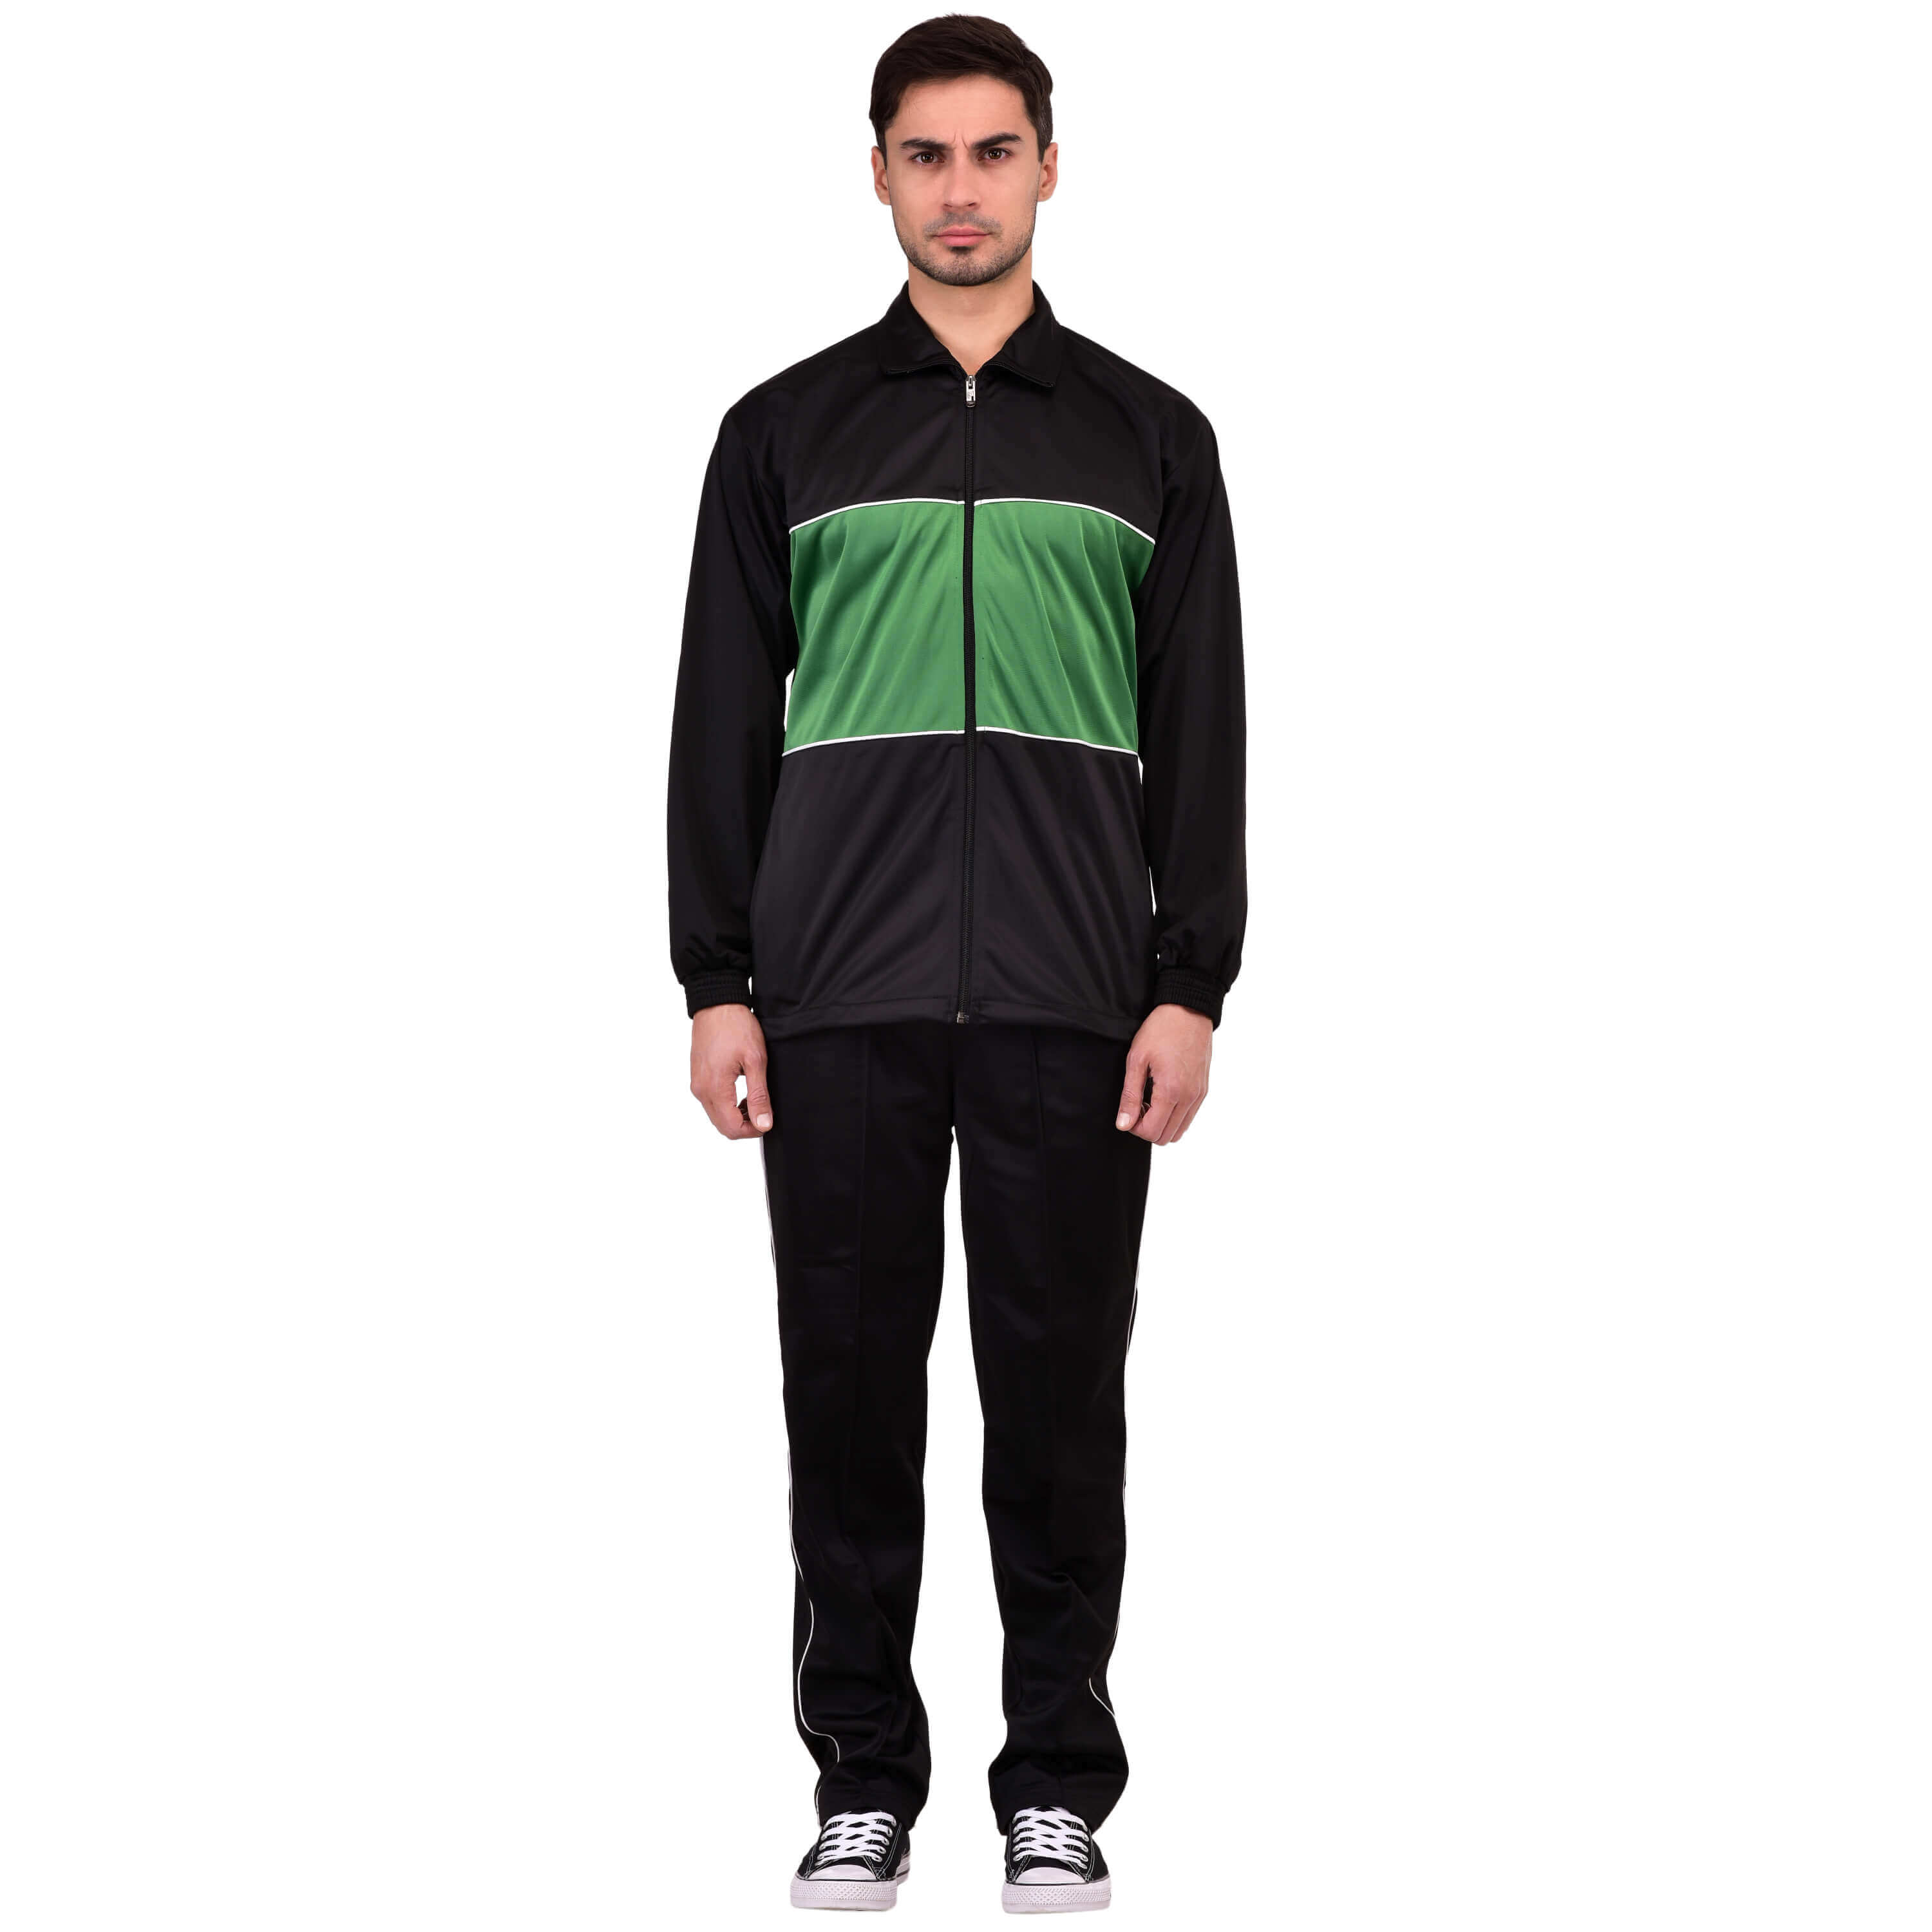 Full Tracksuit Manufacturers in Noida